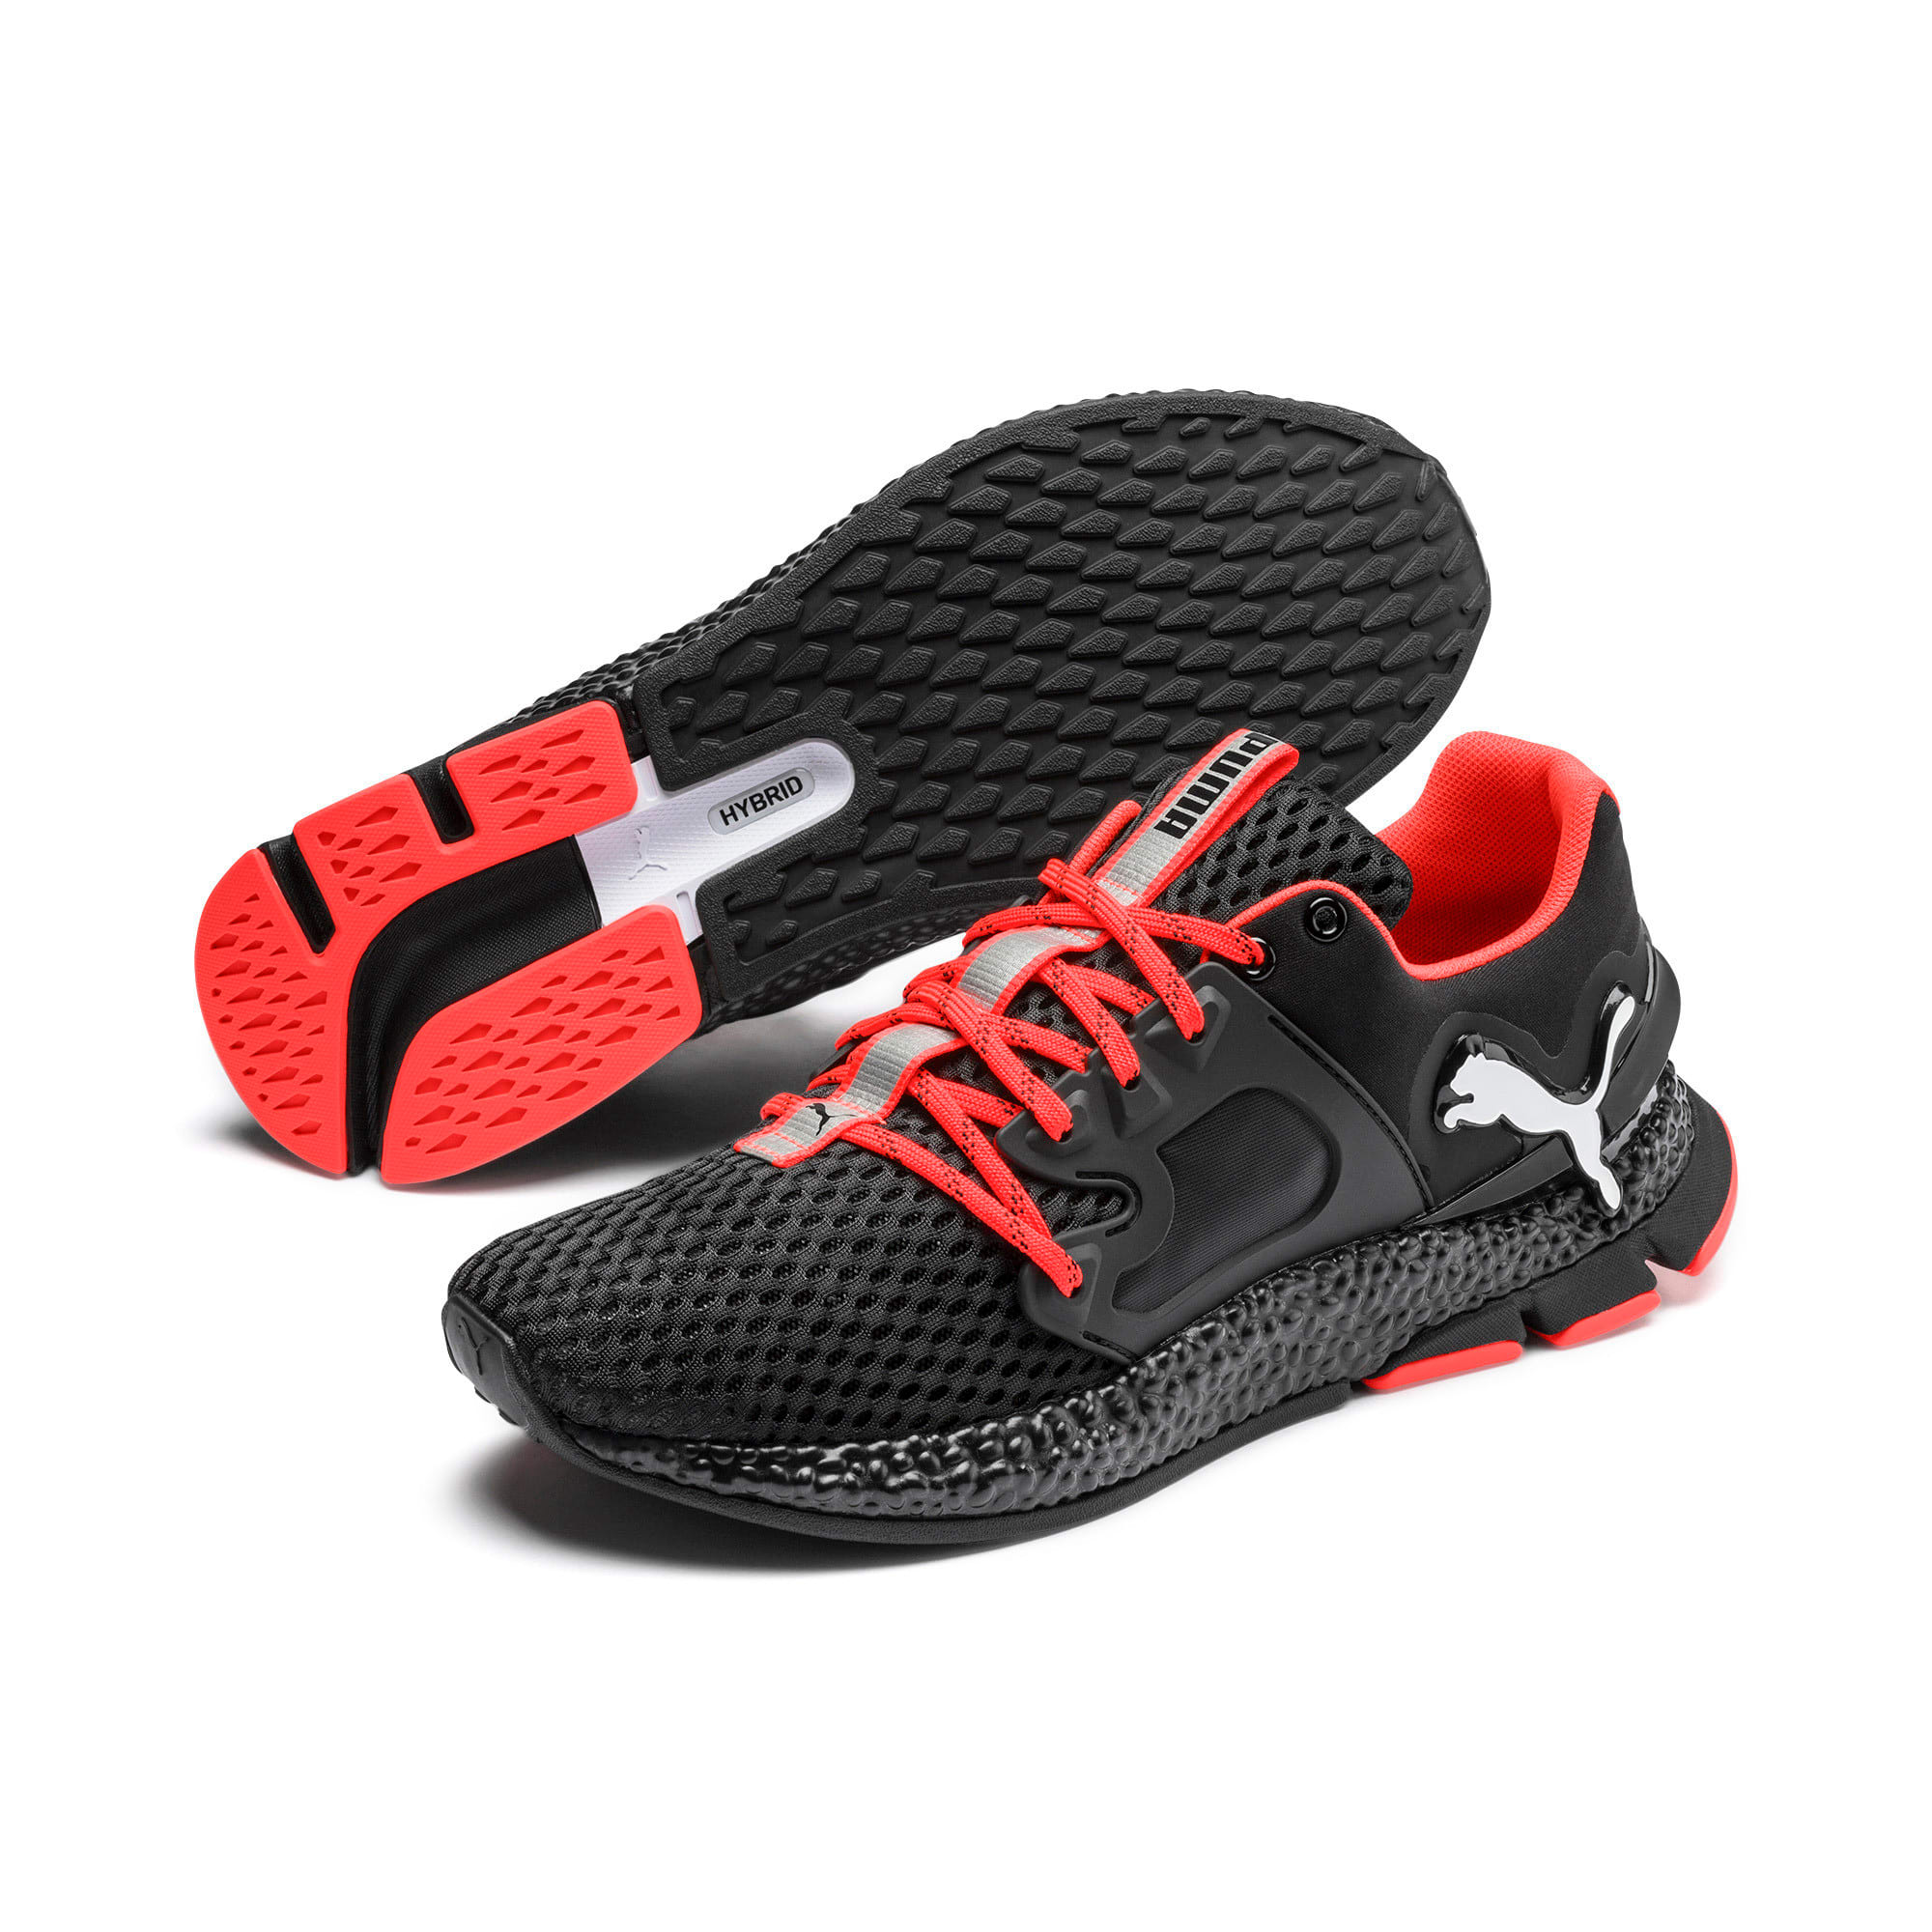 Thumbnail 3 of HYBRID Sky Men's Running Shoes, Black-White-Nrgy Red, medium